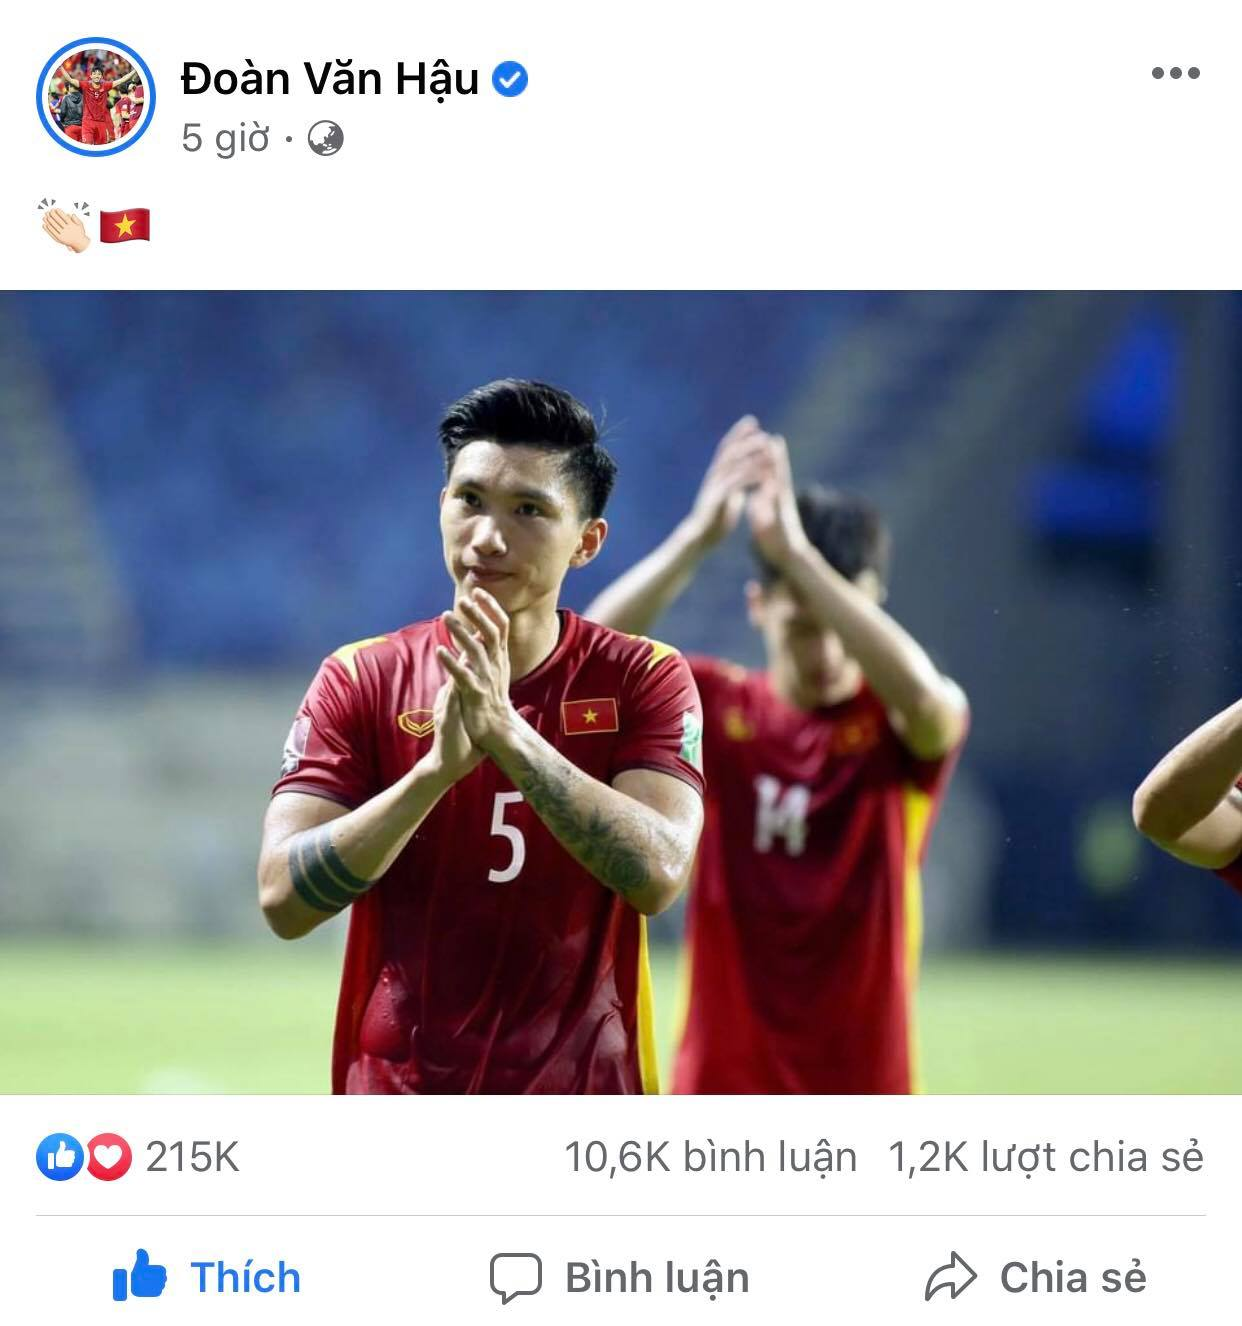 Doan Van Hau also had very good performances in the 2022 World Cup qualifiers.